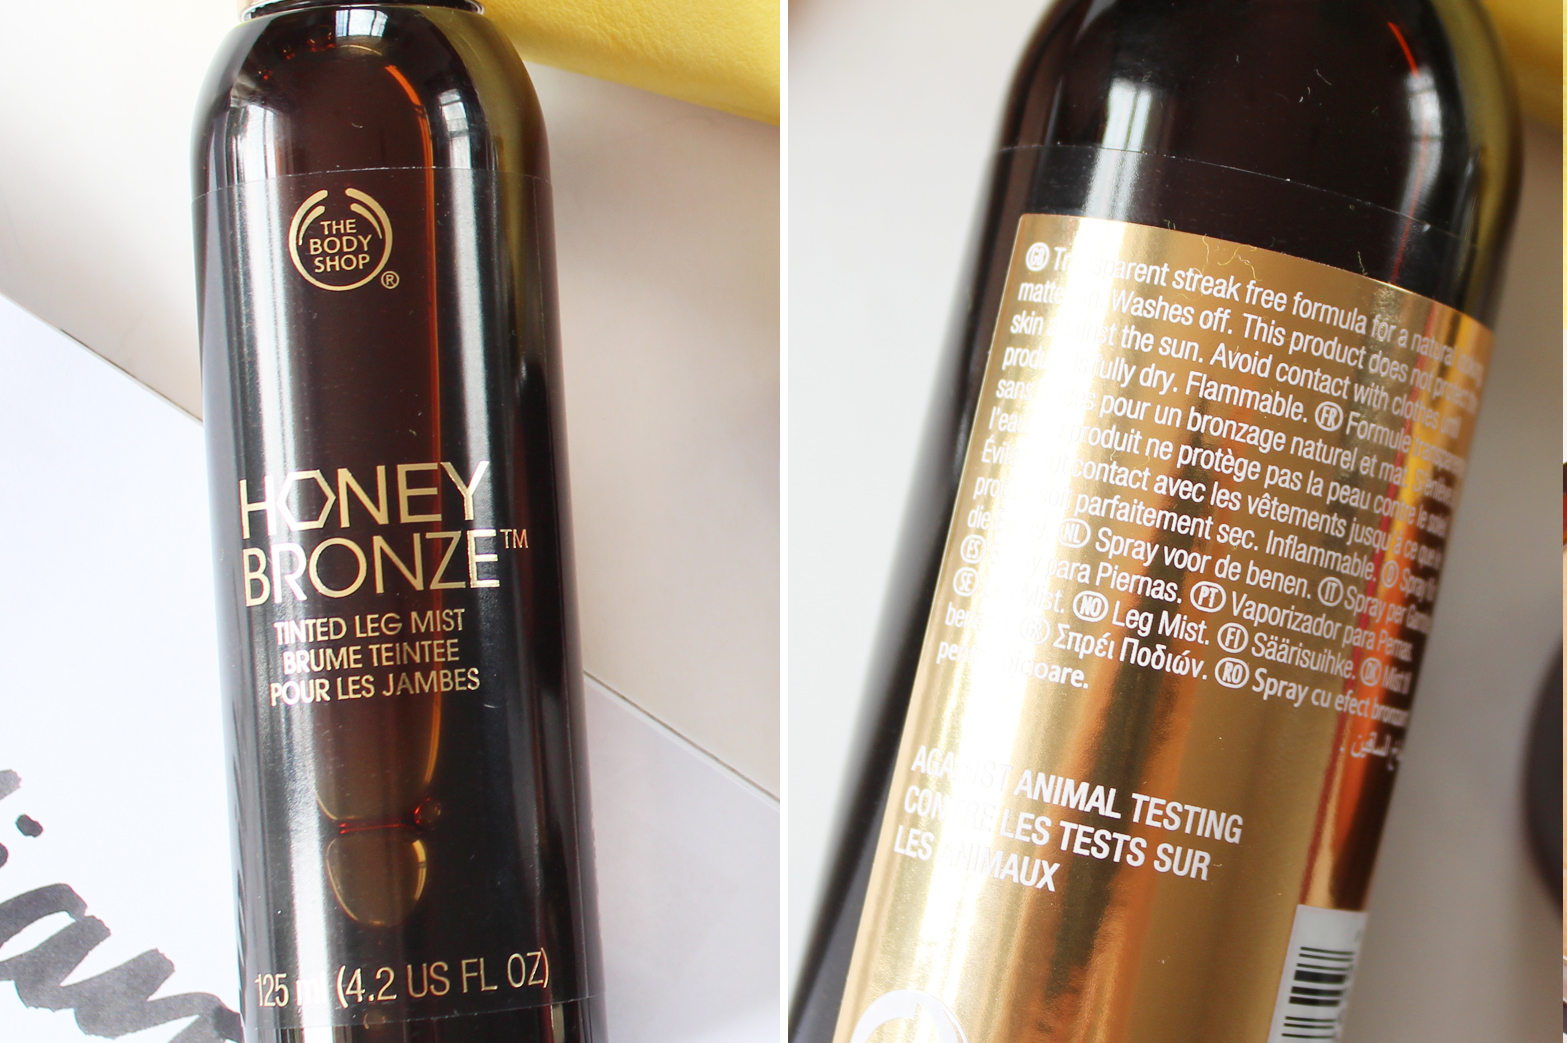 THE BODY SHOP | New Honey Bronze Tinted Leg Mist + Highlighting Domes - CassandraMyee